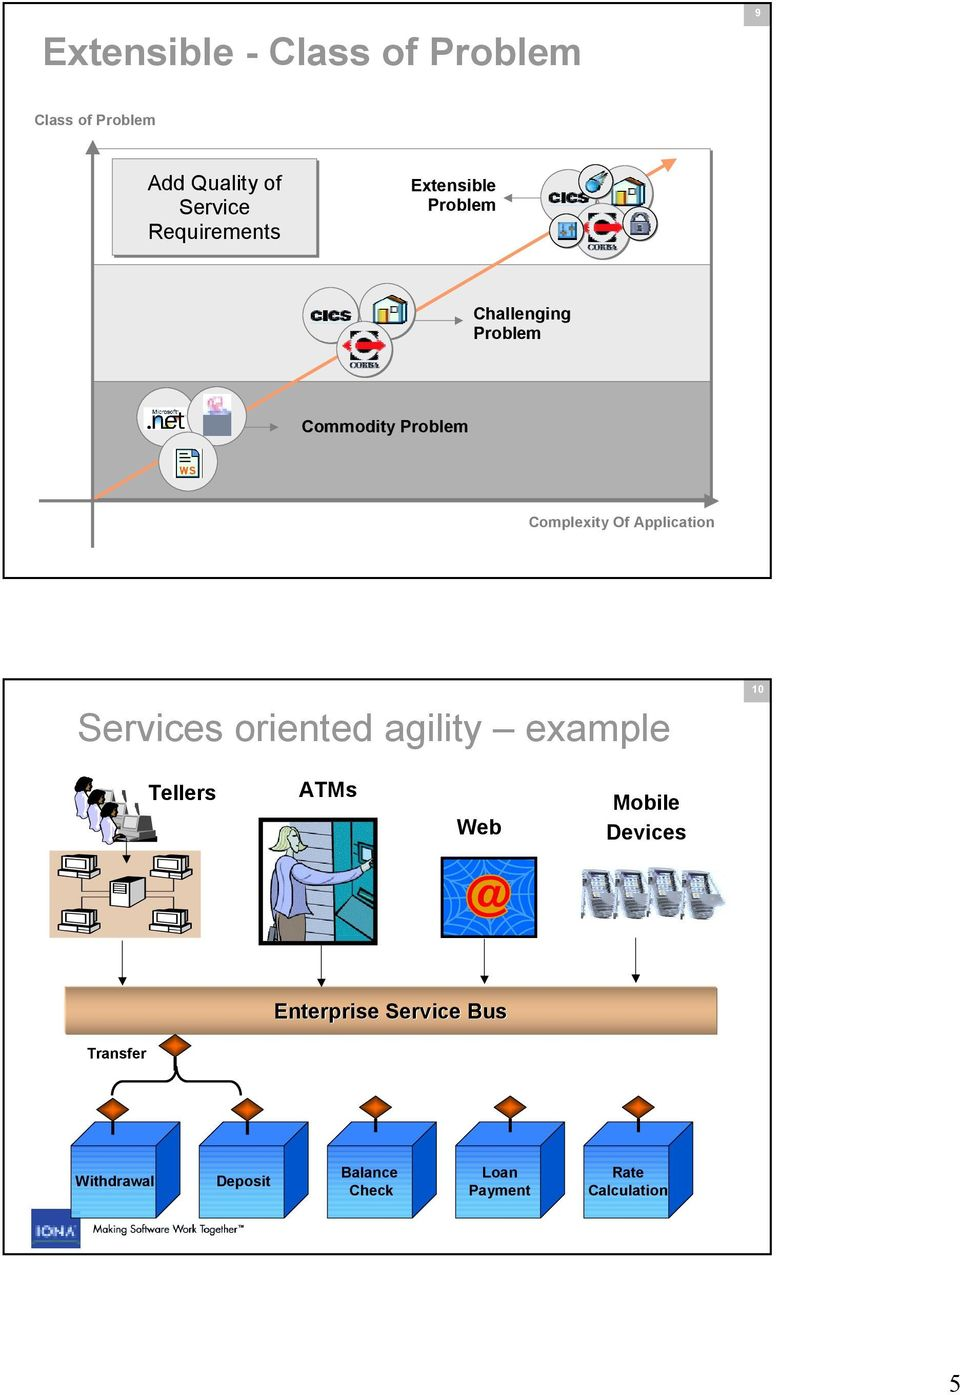 Application Services oriented agility example 10 Tellers ATMs Web Mobile Devices